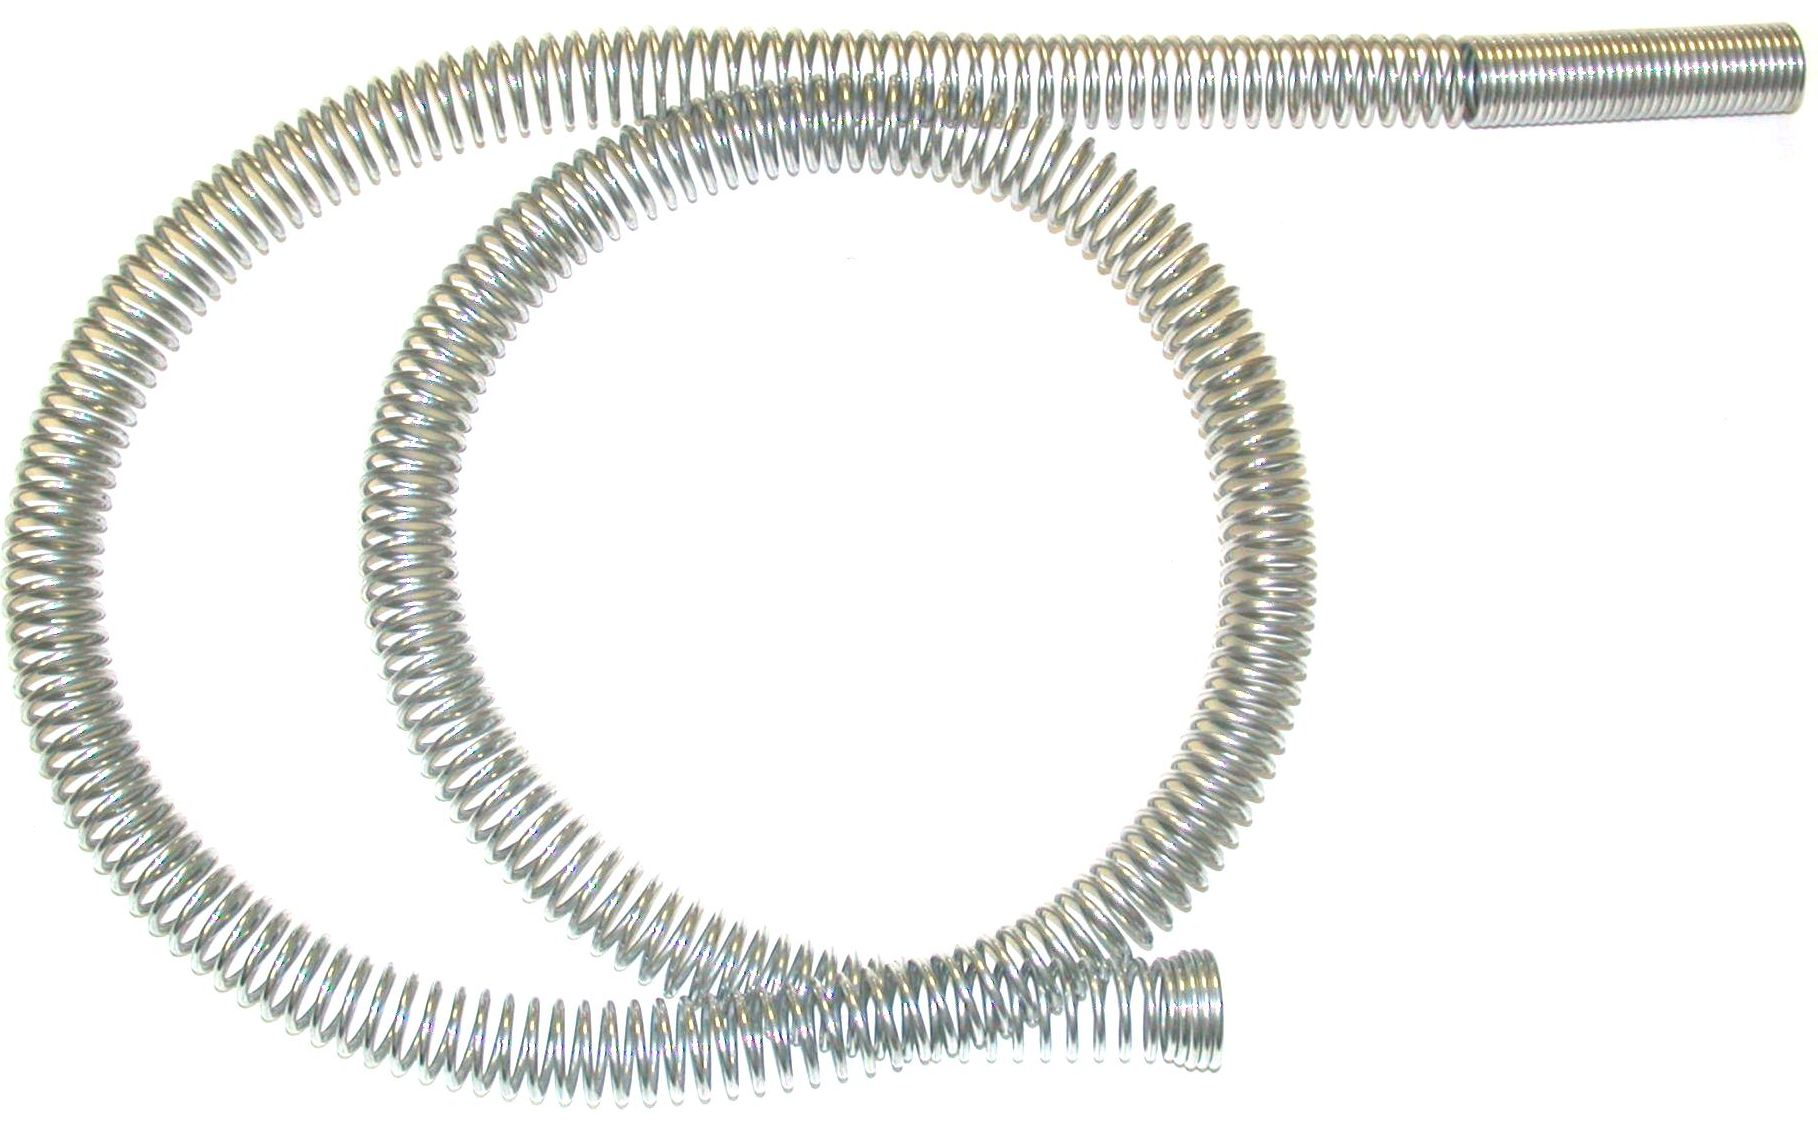 Spring for Airline Air-Hose Spring